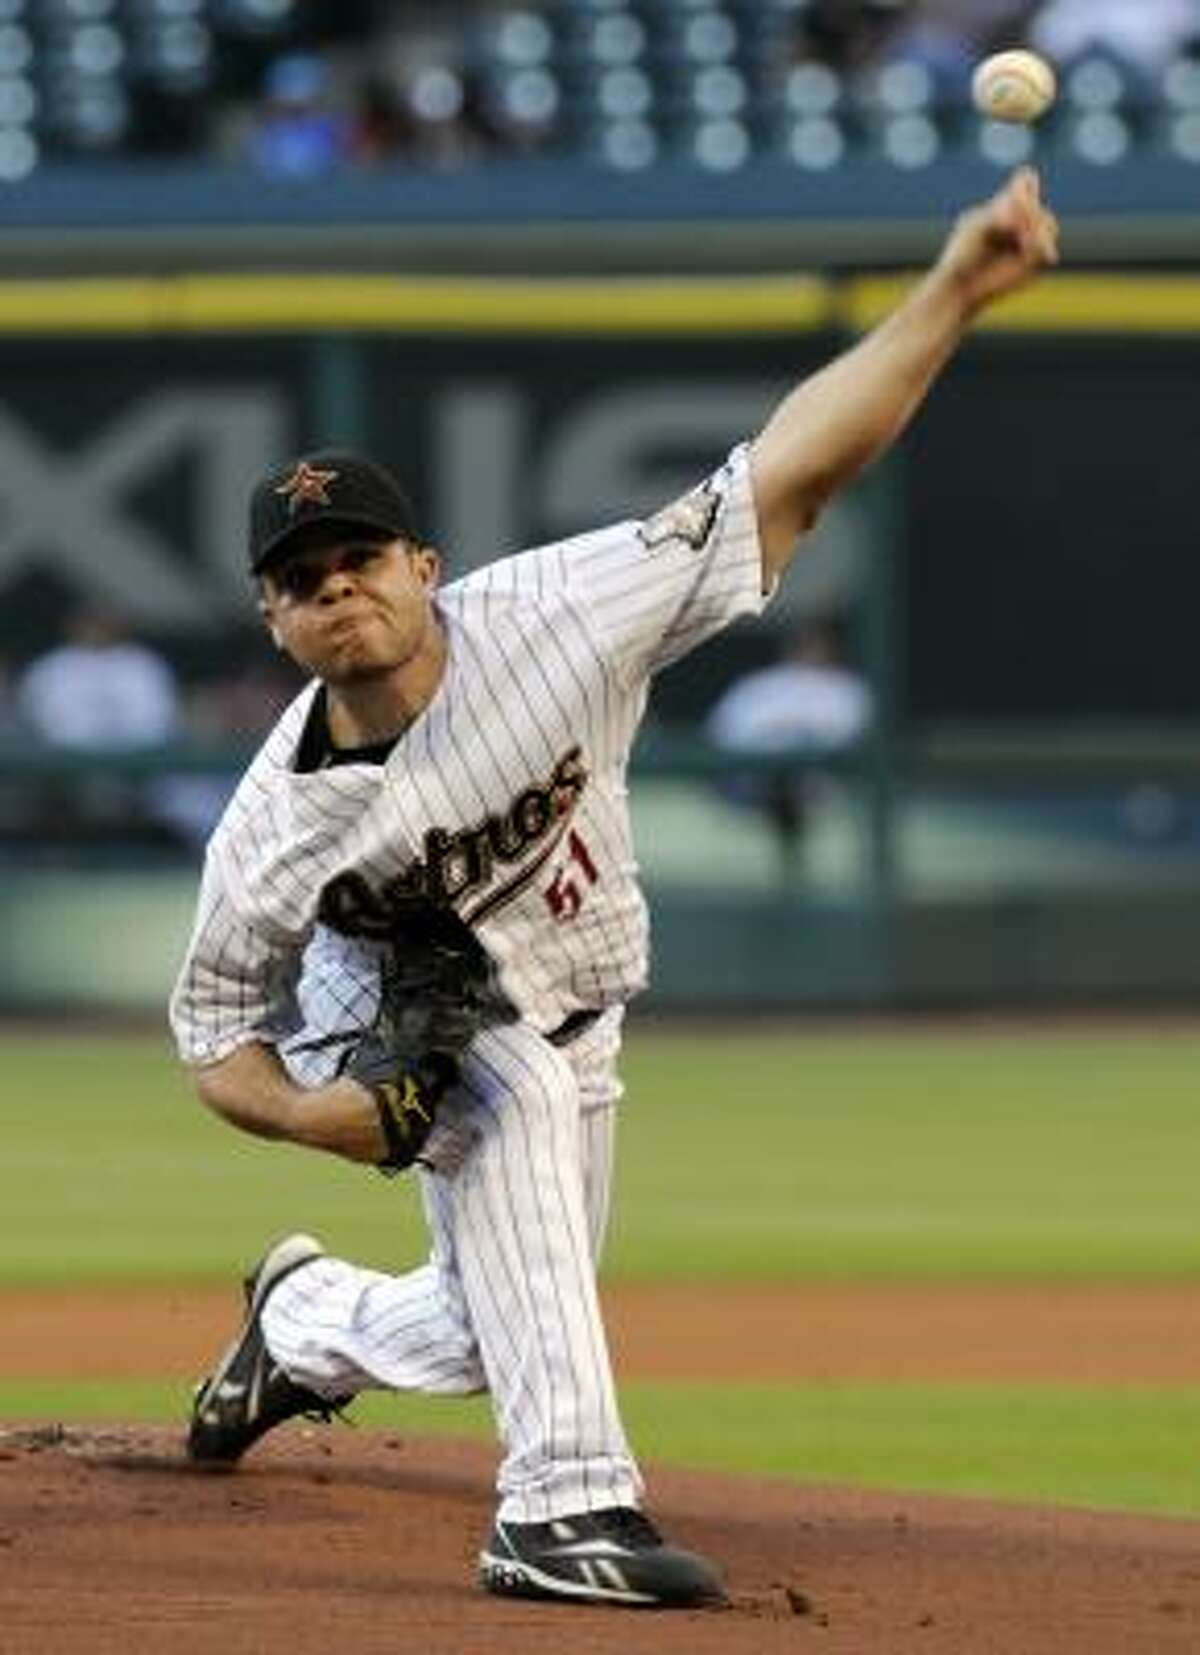 Astros starter Wandy Rodriguez came into Wednesday's game with a 1.90 ERA.